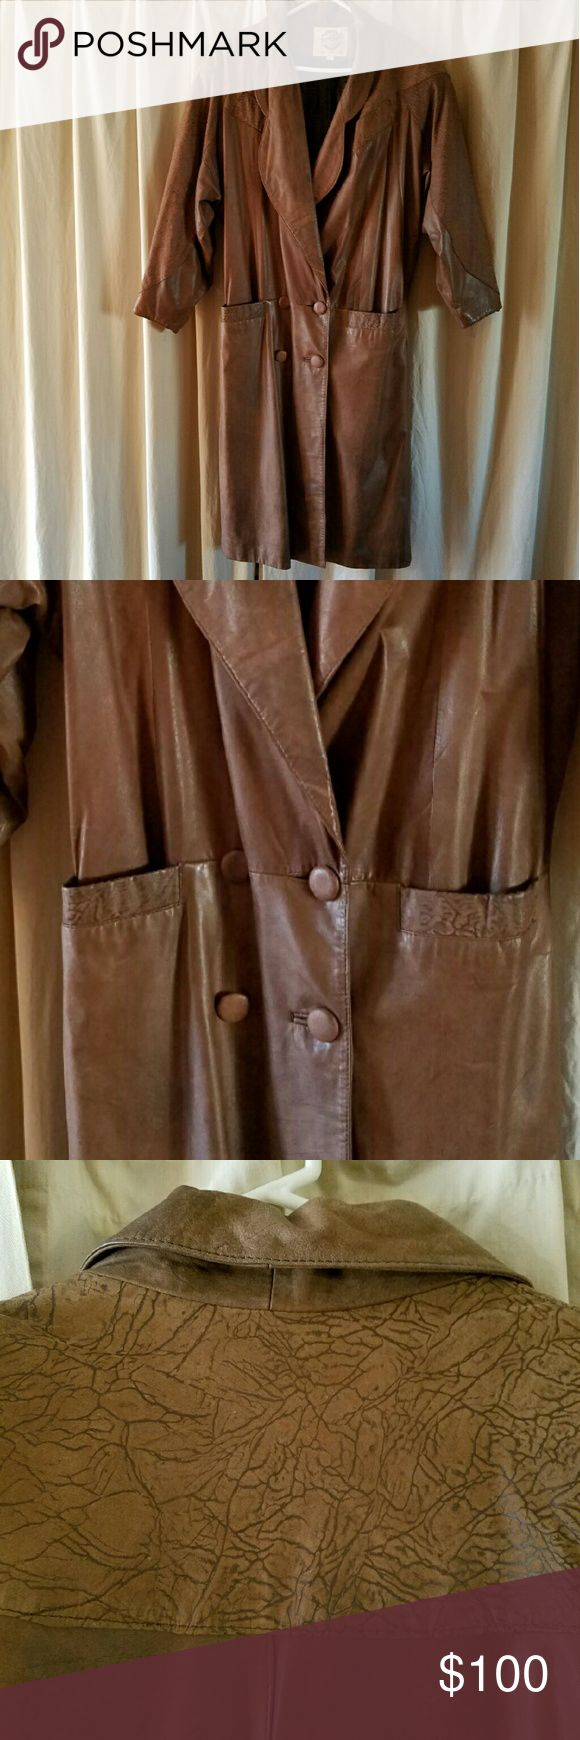 Bought at Wilson's leather store....full length Extra soft worn leather...gently used.....normal wear....rn54163 global identity Jackets & Coats Trench Coats